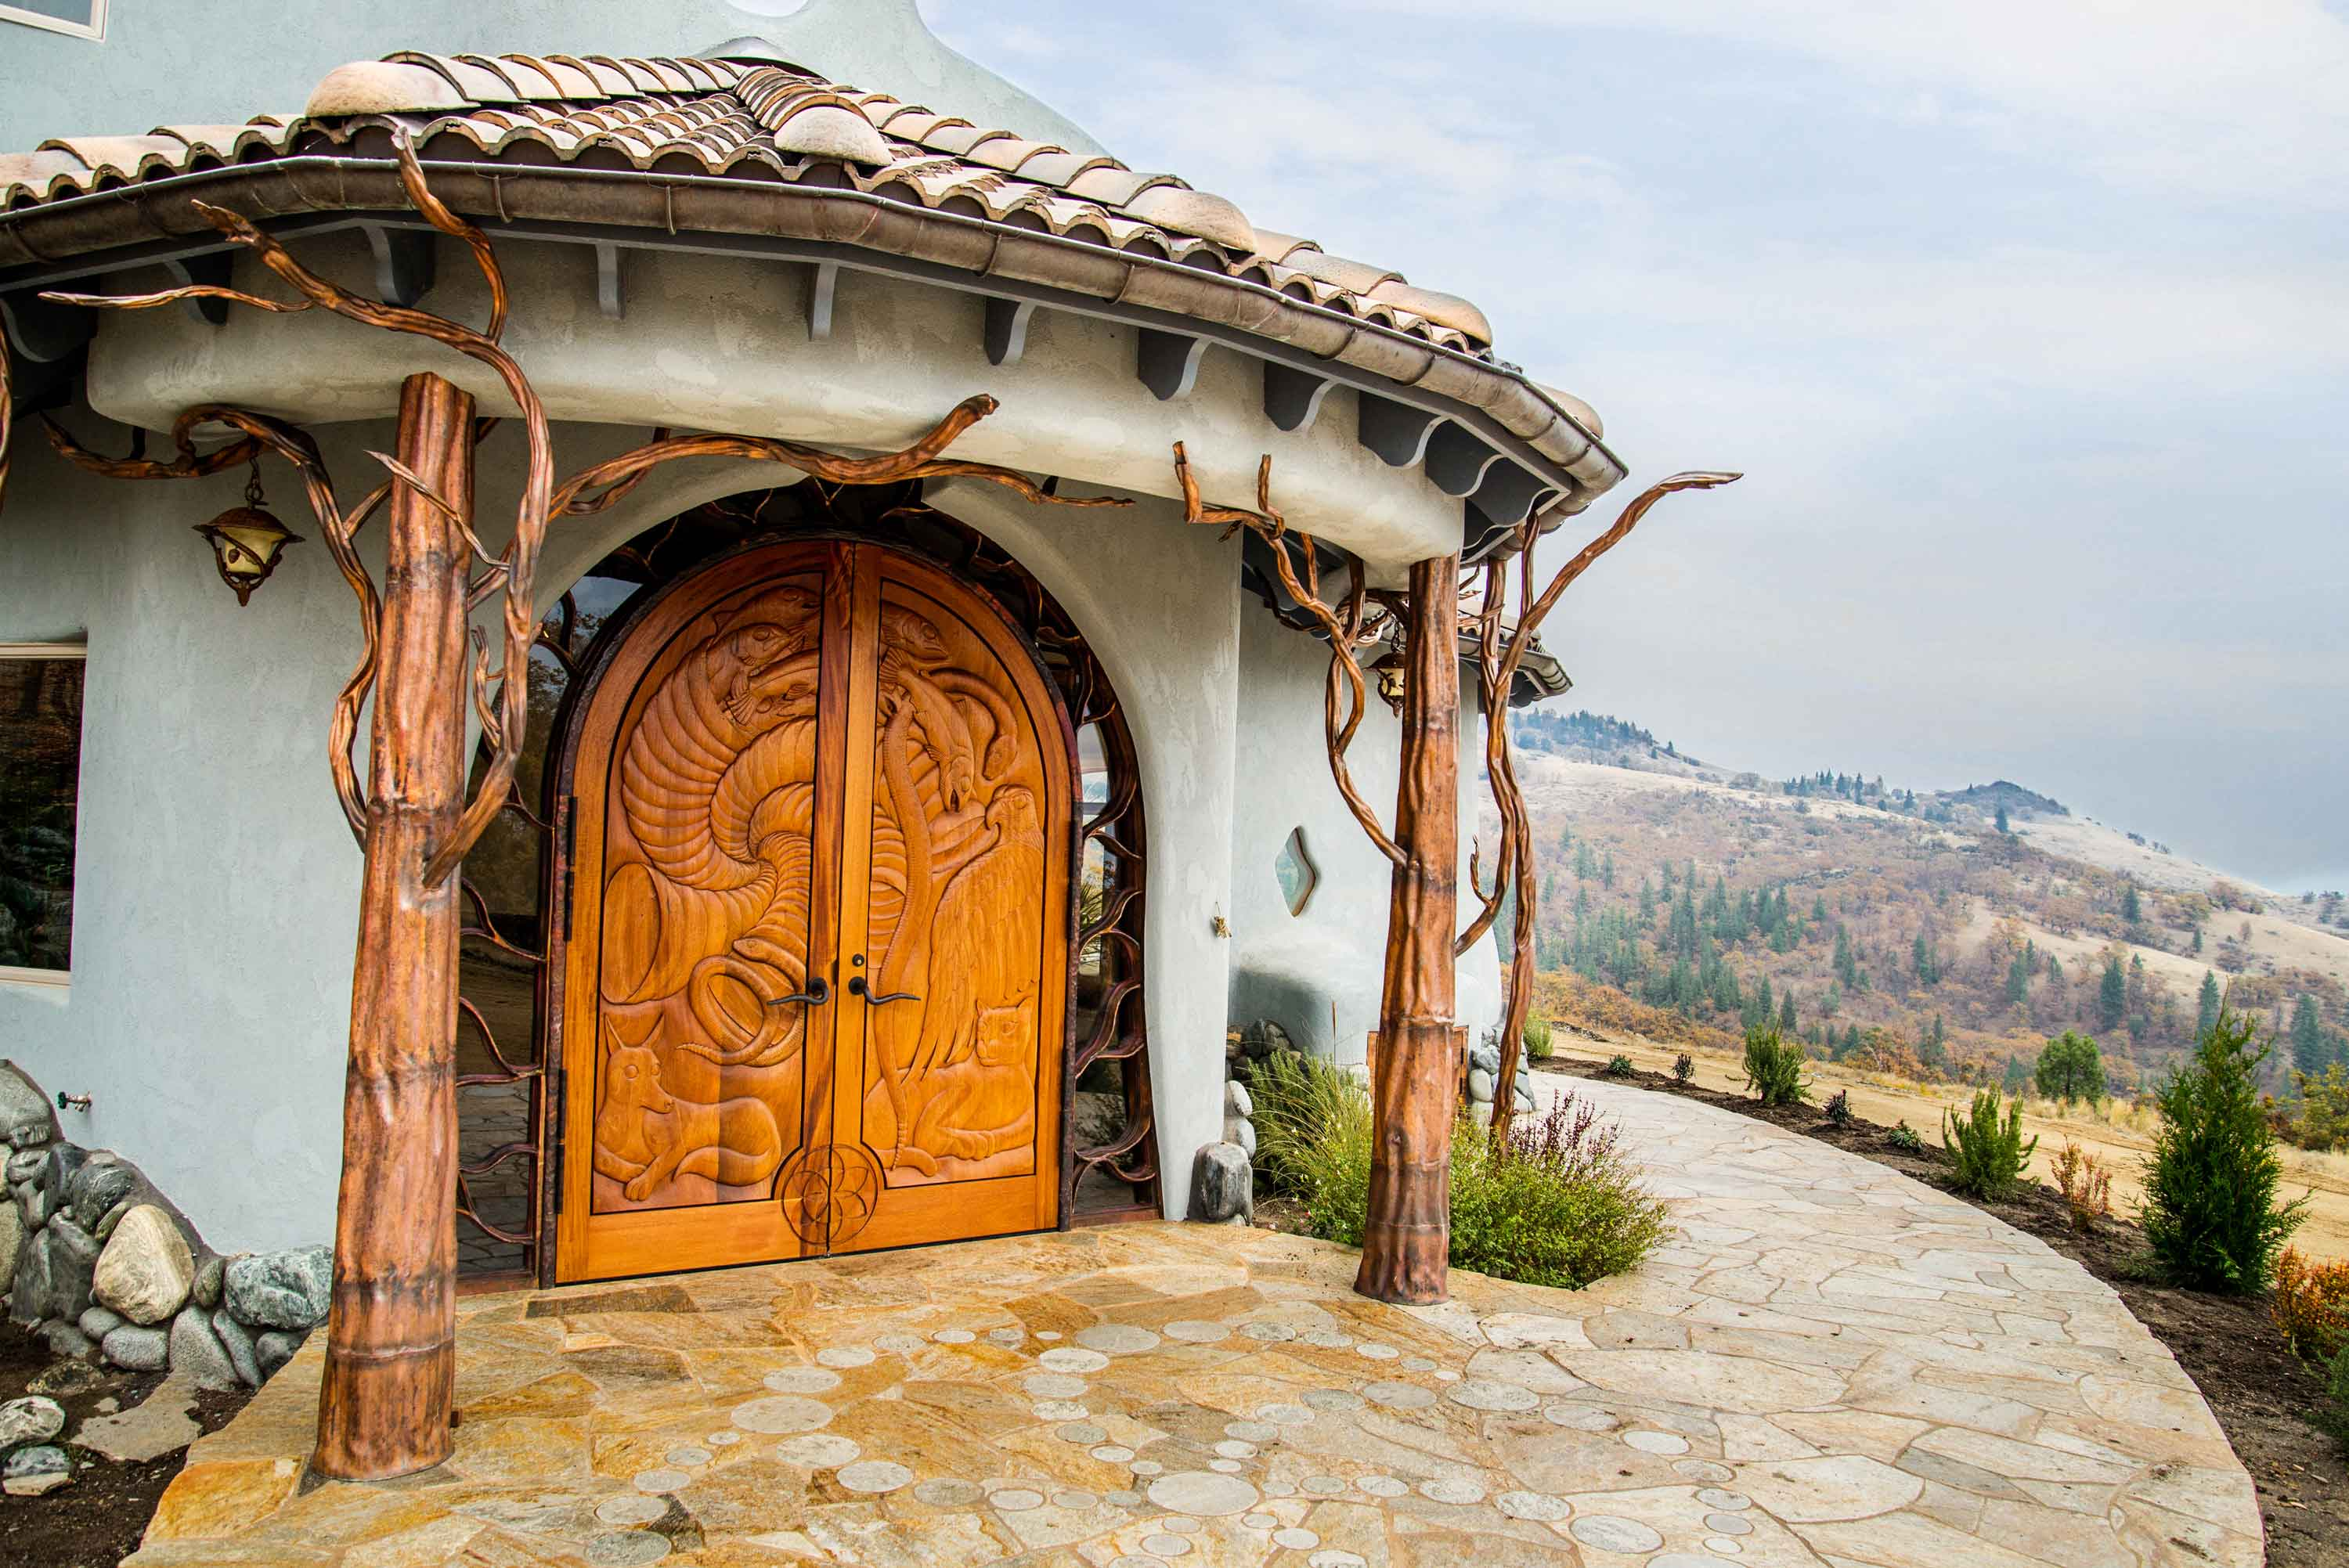 The striking 8,880-square-foot residence that stands at the center of Shining Hand Ranch is a work of art handcrafted from exotic wood and river rock to evoke the flow of nature.